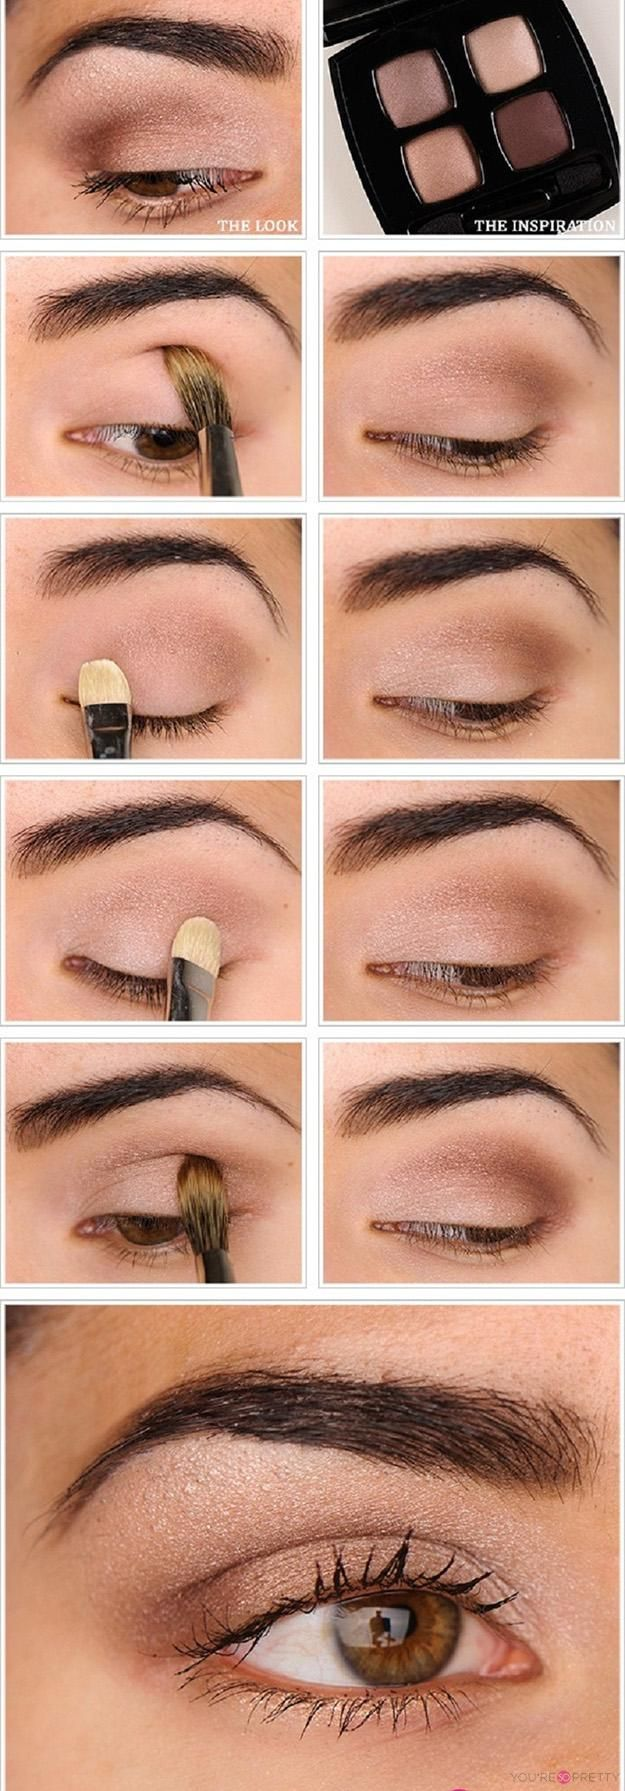 Everyday Natural Makeup Tutorials - You're So Pretty